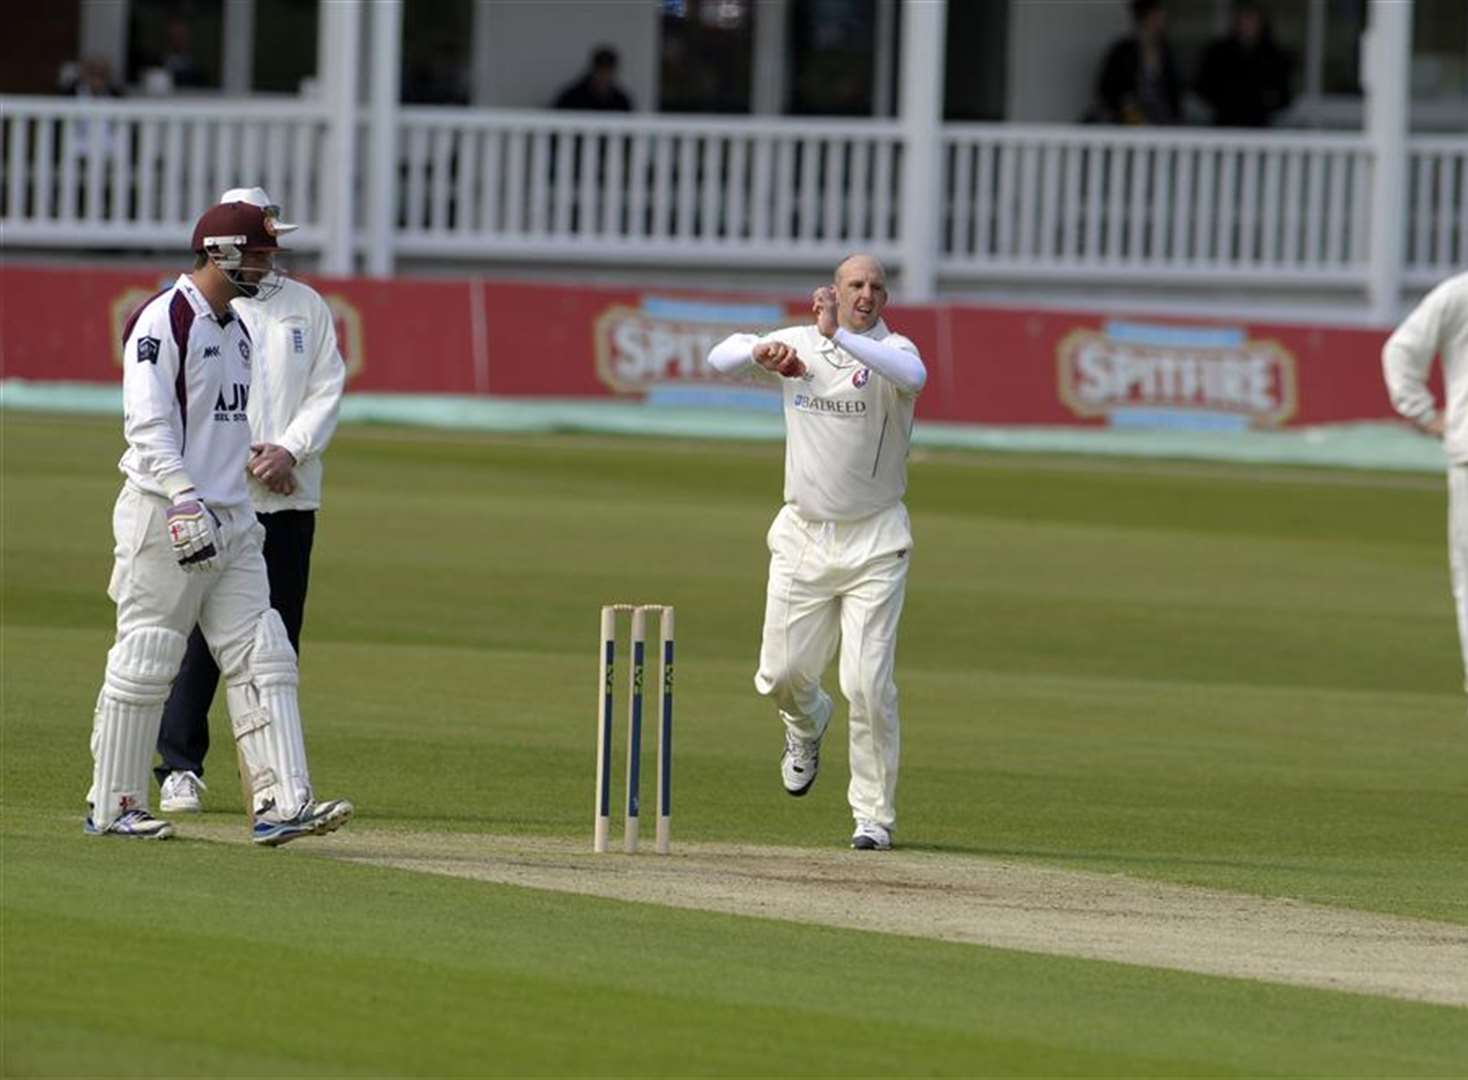 Tredwell gets England one-day call